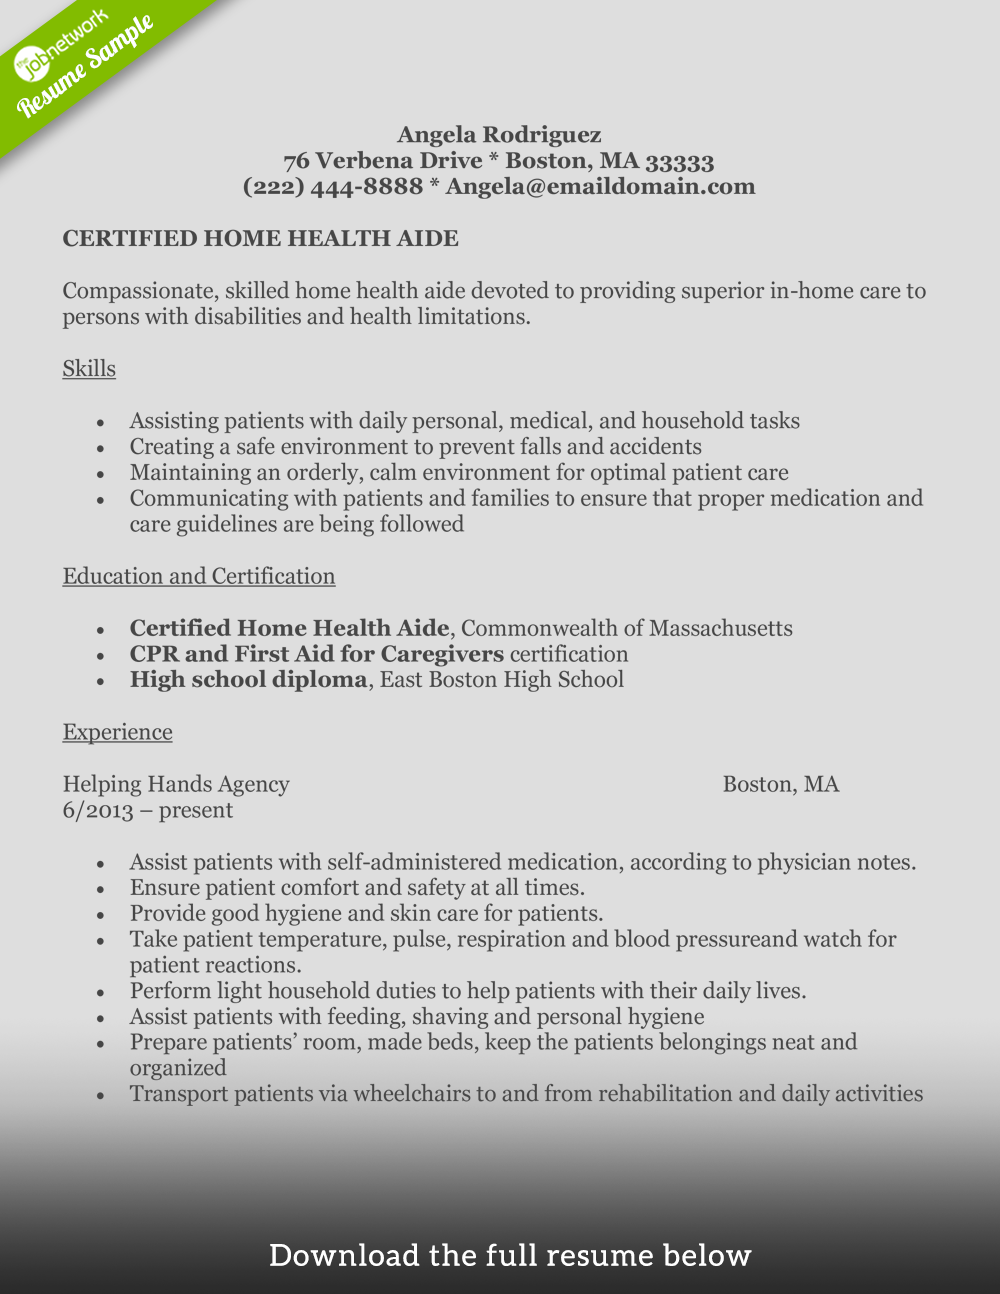 Home Health Aide Resume Certified  How To Write Resume